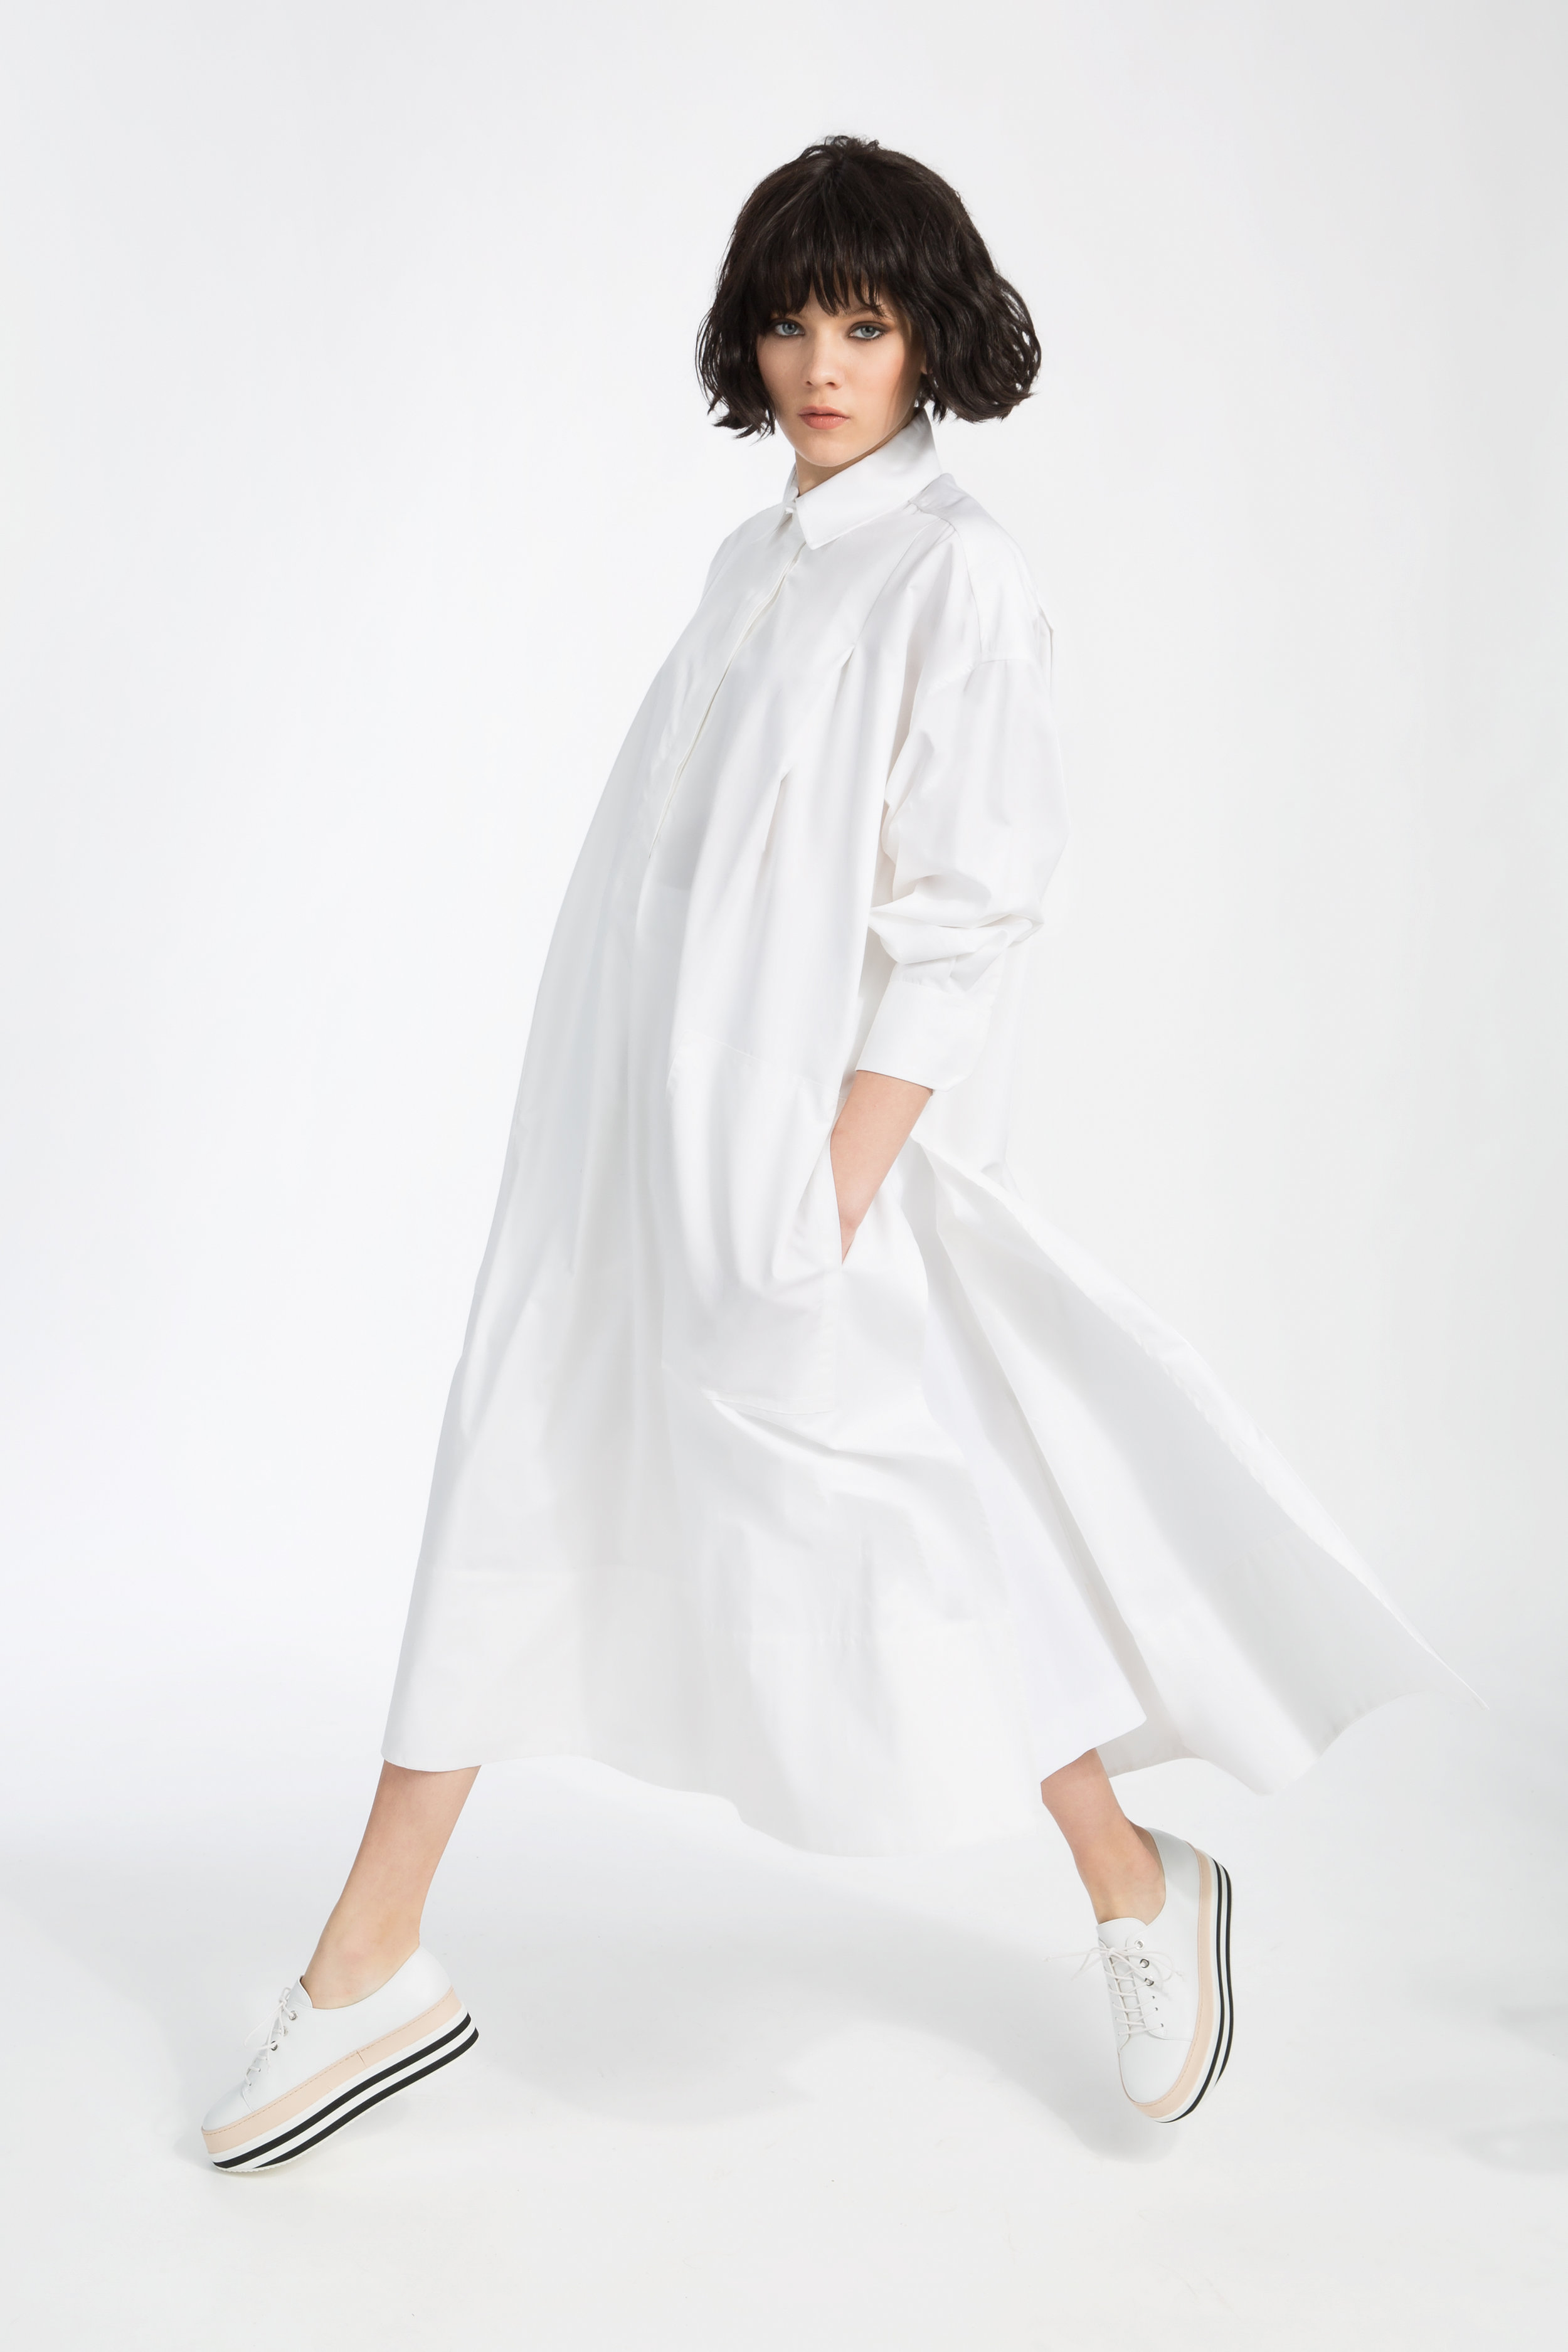 White Shirt Capsule - ....Capsule #2 celebrates the timeless minimalism of the quintessential white shirt, a staple in every woman's wardrobe. Each shirt, in this carefully edited collection, evokes a sense of effortless style, luxurious simplicity and elegance. Designed to put forth individual style, each piece highlights the refined craftsmanship and high-quality textiles that outlast the run of a fashion season...    Normal 0   21   false false false  EN-US JA X-NONE                                                                                                                                                                                         /* Style Definitions */ table.MsoNormalTable {mso-style-name: